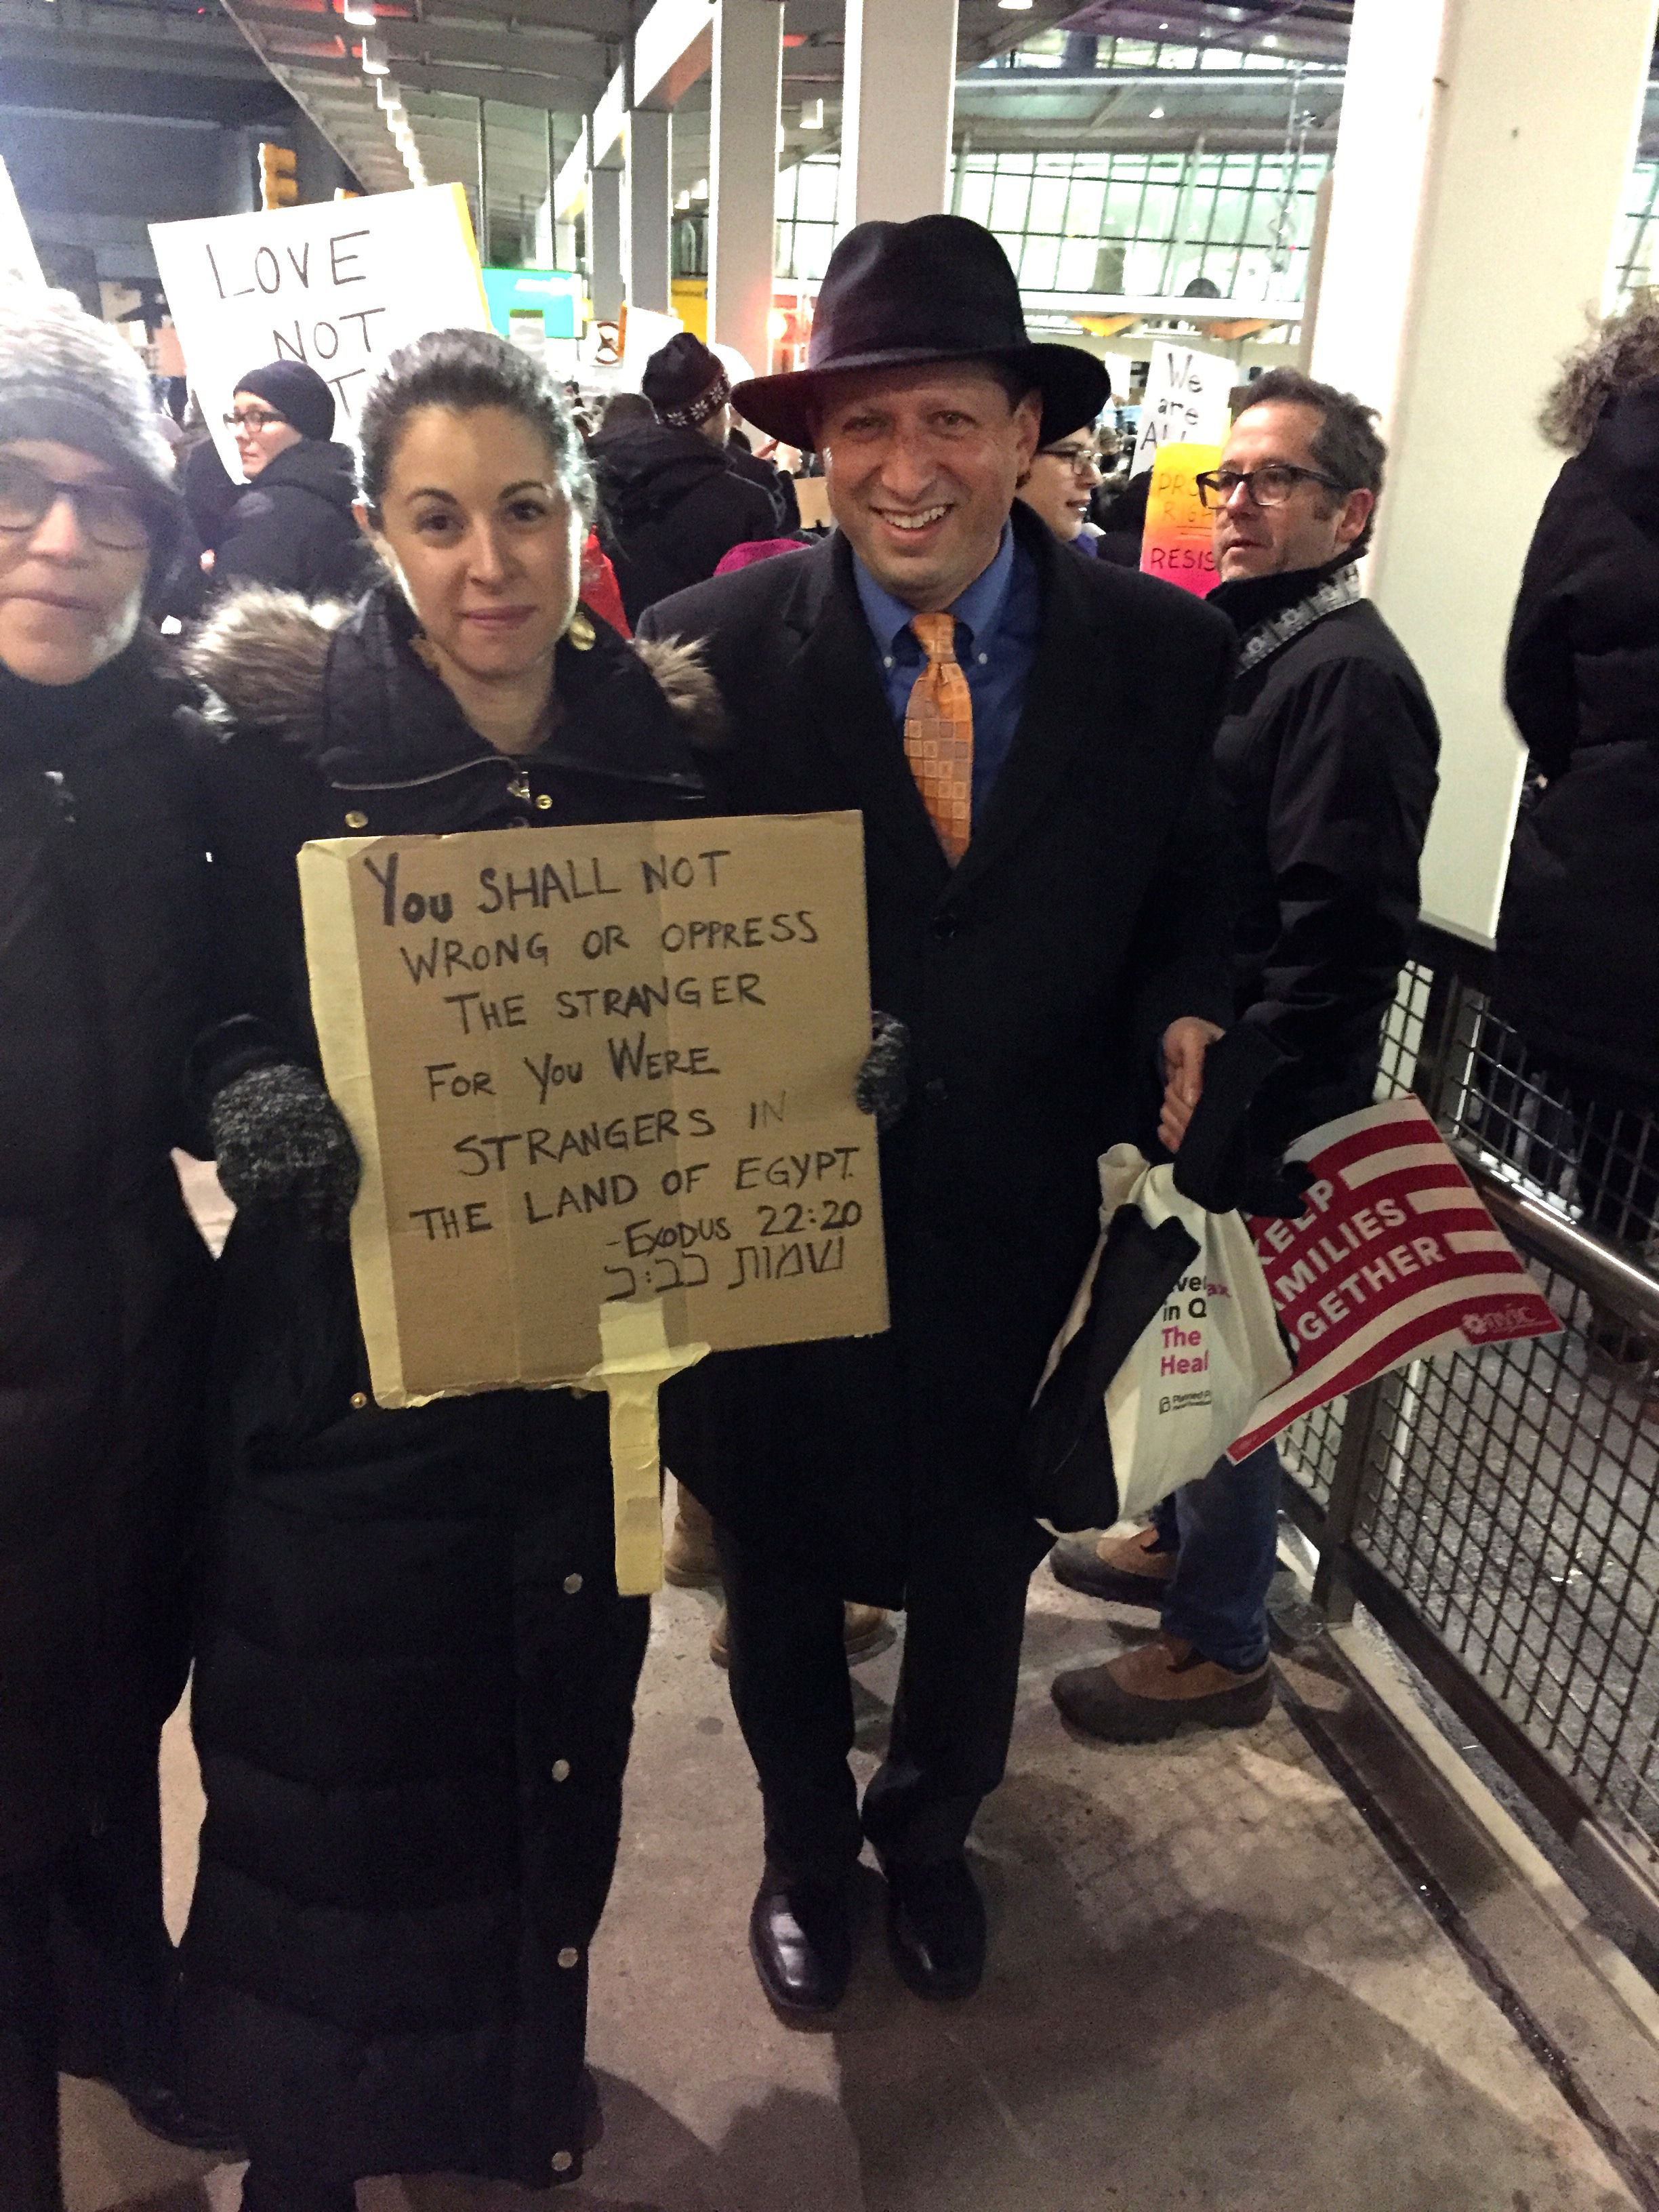 Brad Lander and a rabbi friend posted President Donald Trump's ban on immigrants from seven majority-Muslim countries.